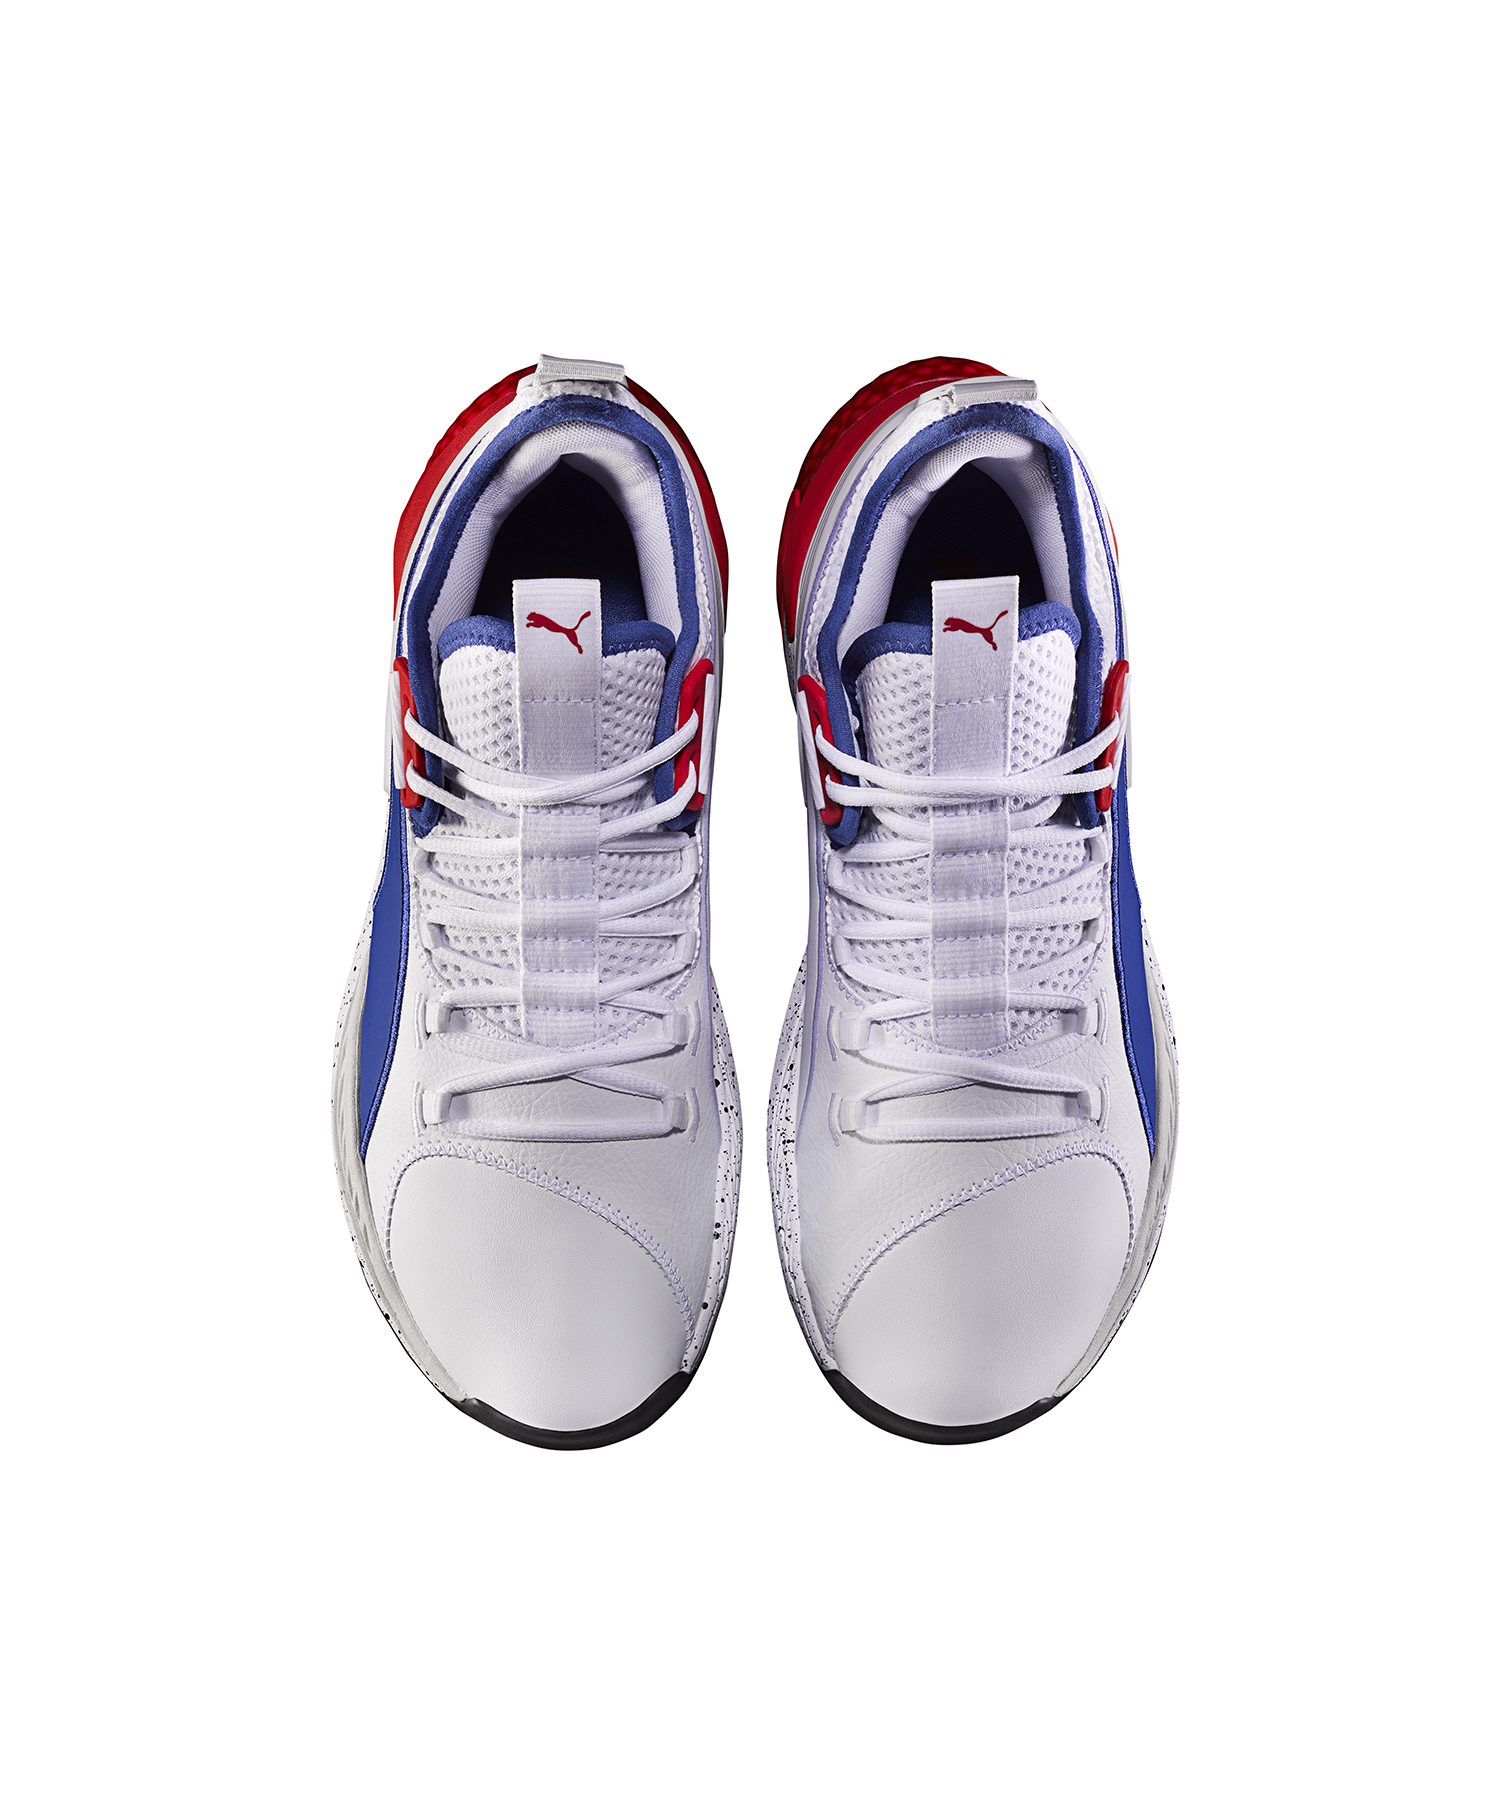 Puma unveils new sneakers honoring the Palace  92474fed7